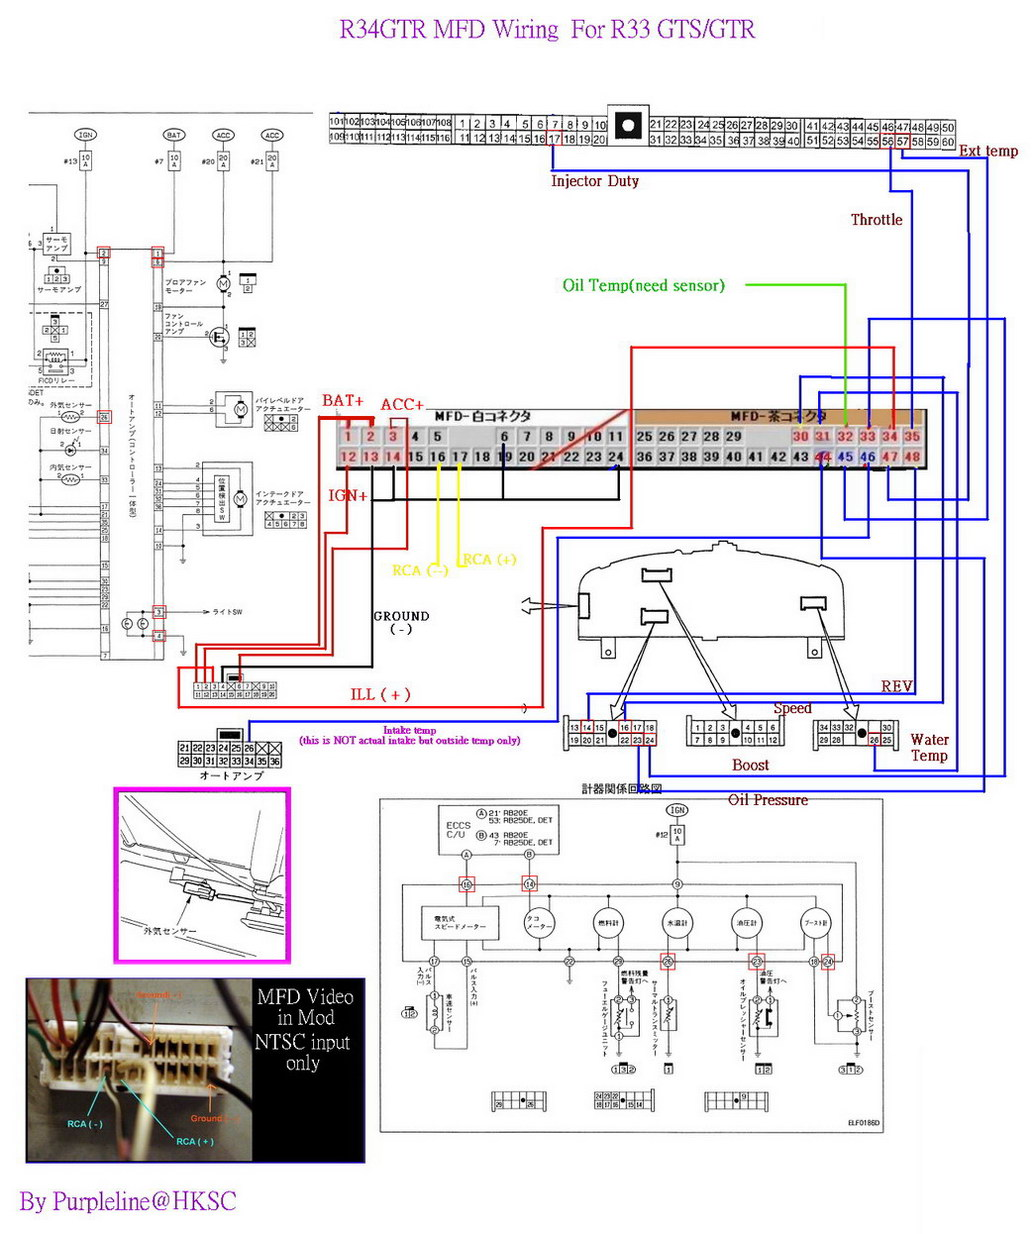 gtr wiring diagram gtr wiring diagram #2